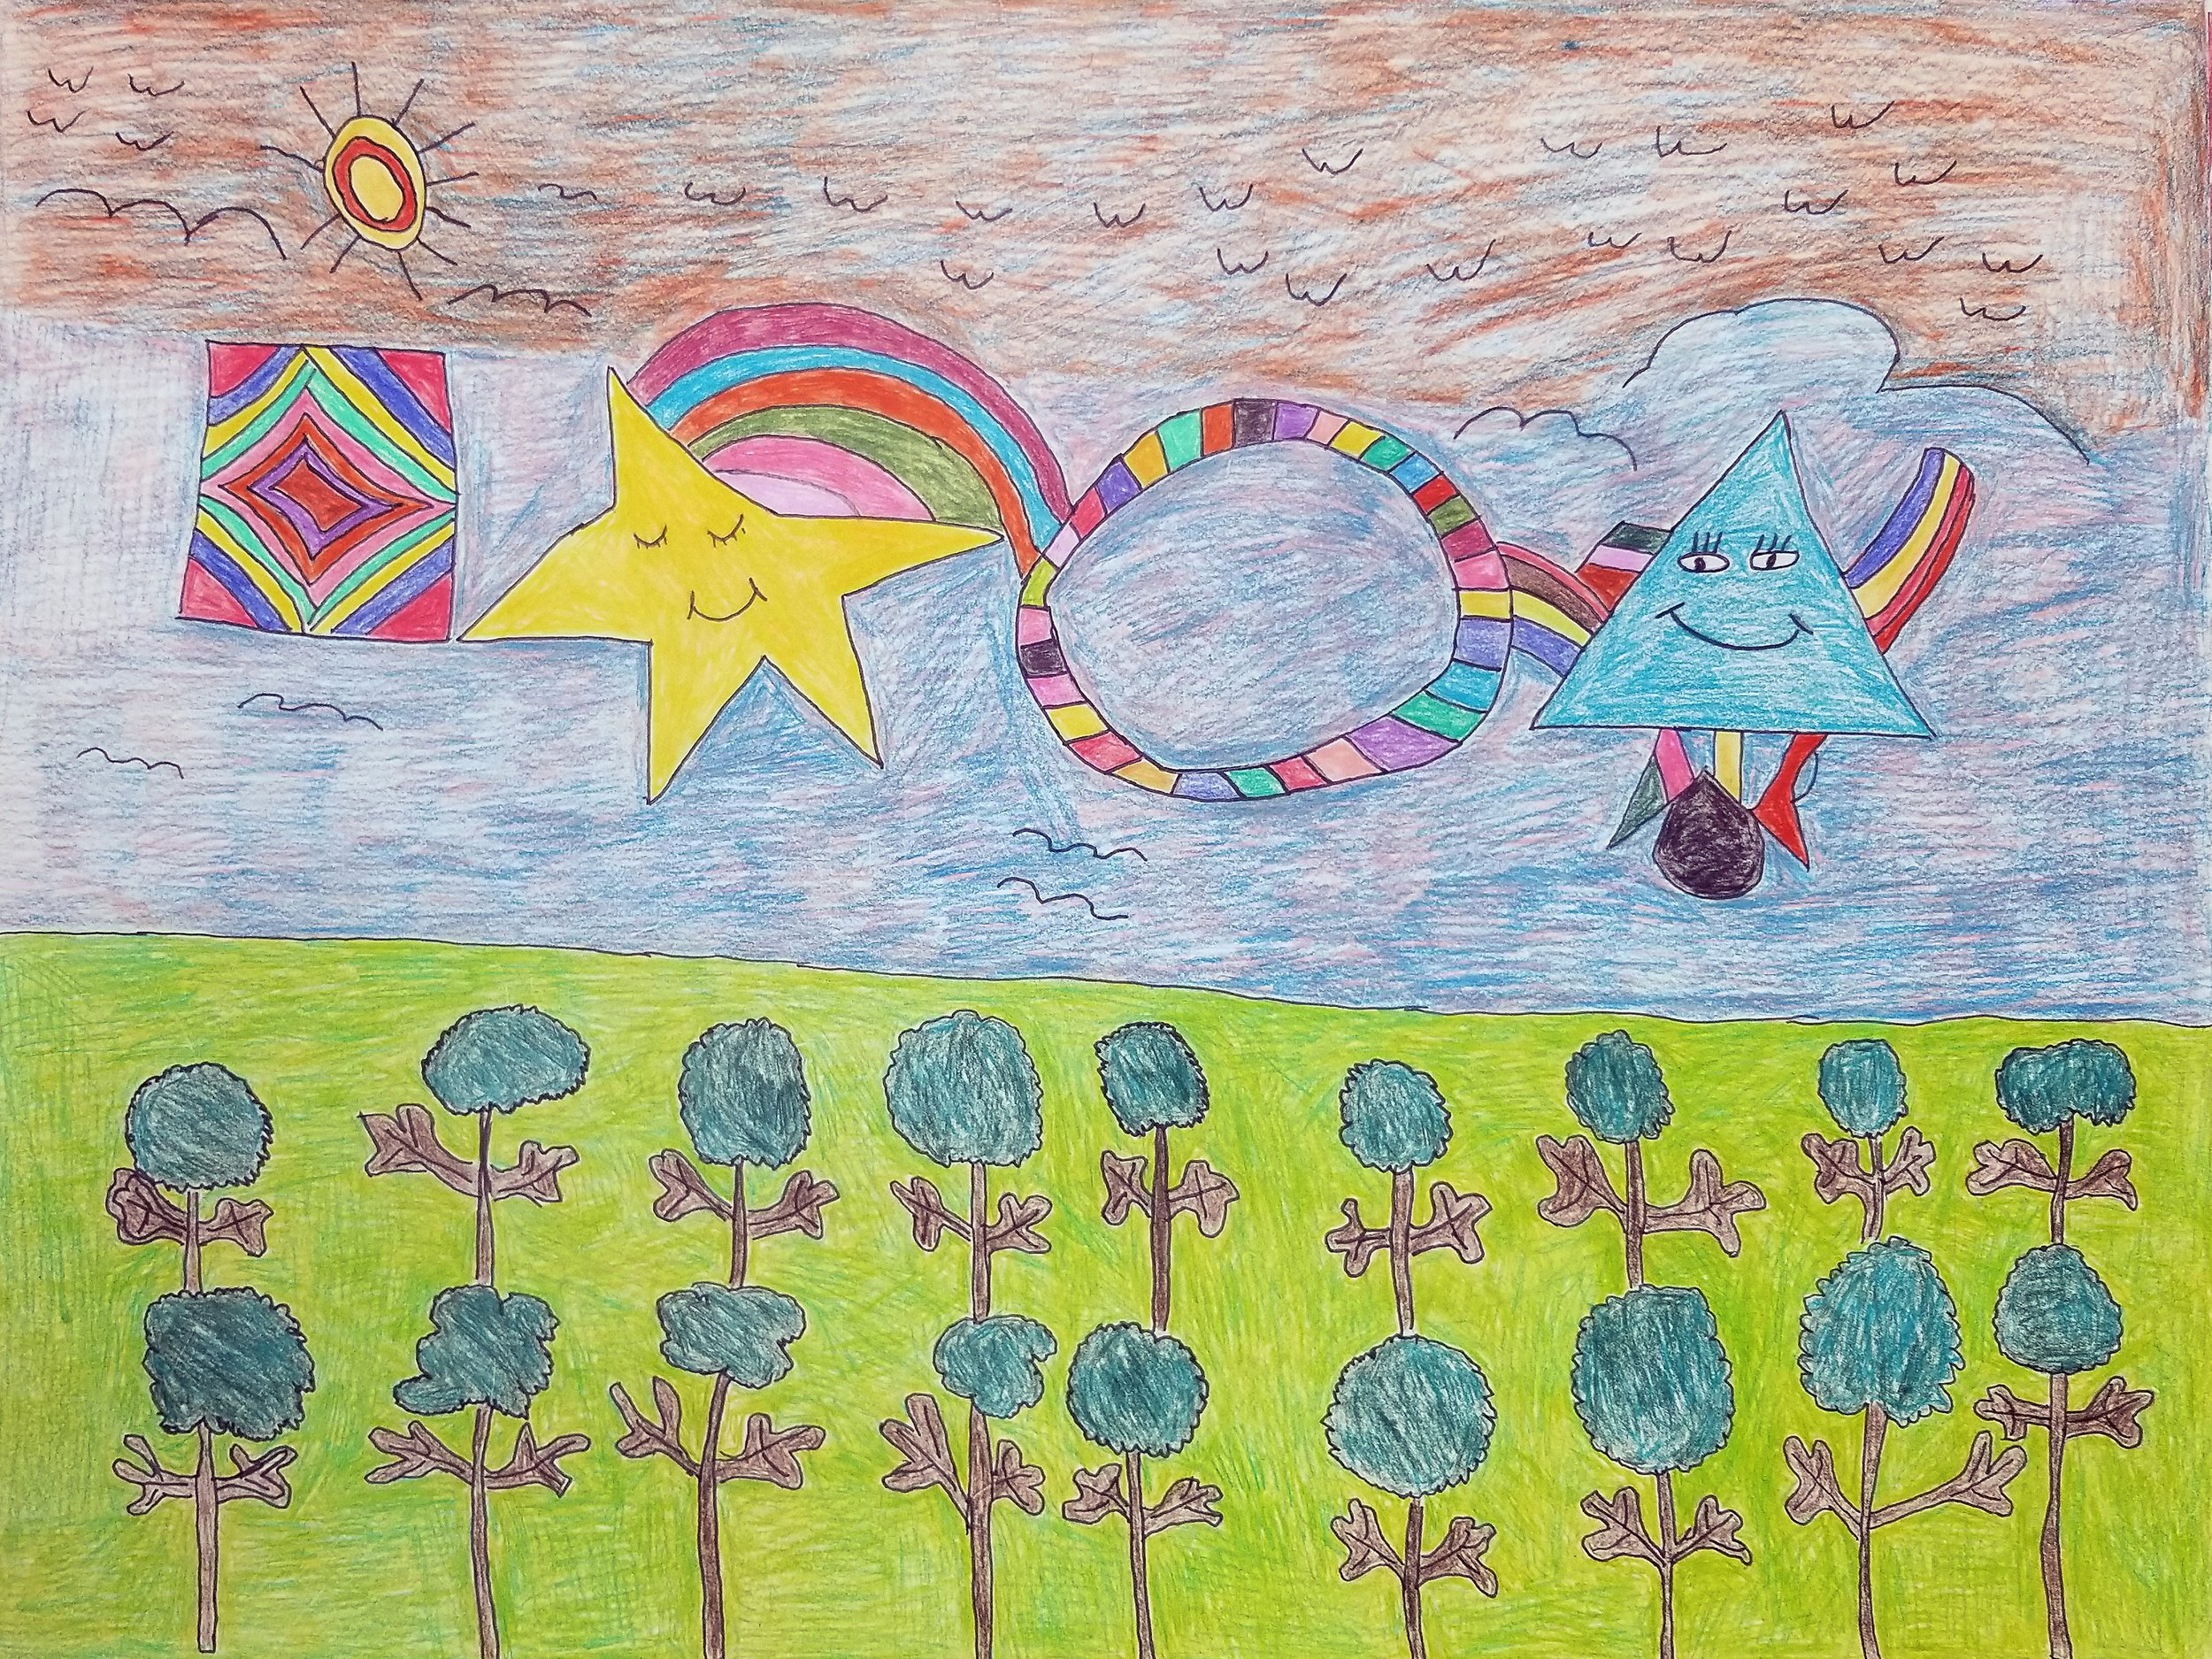 I Saw it on TV (A Field) - colored pencil - 2018.jpg